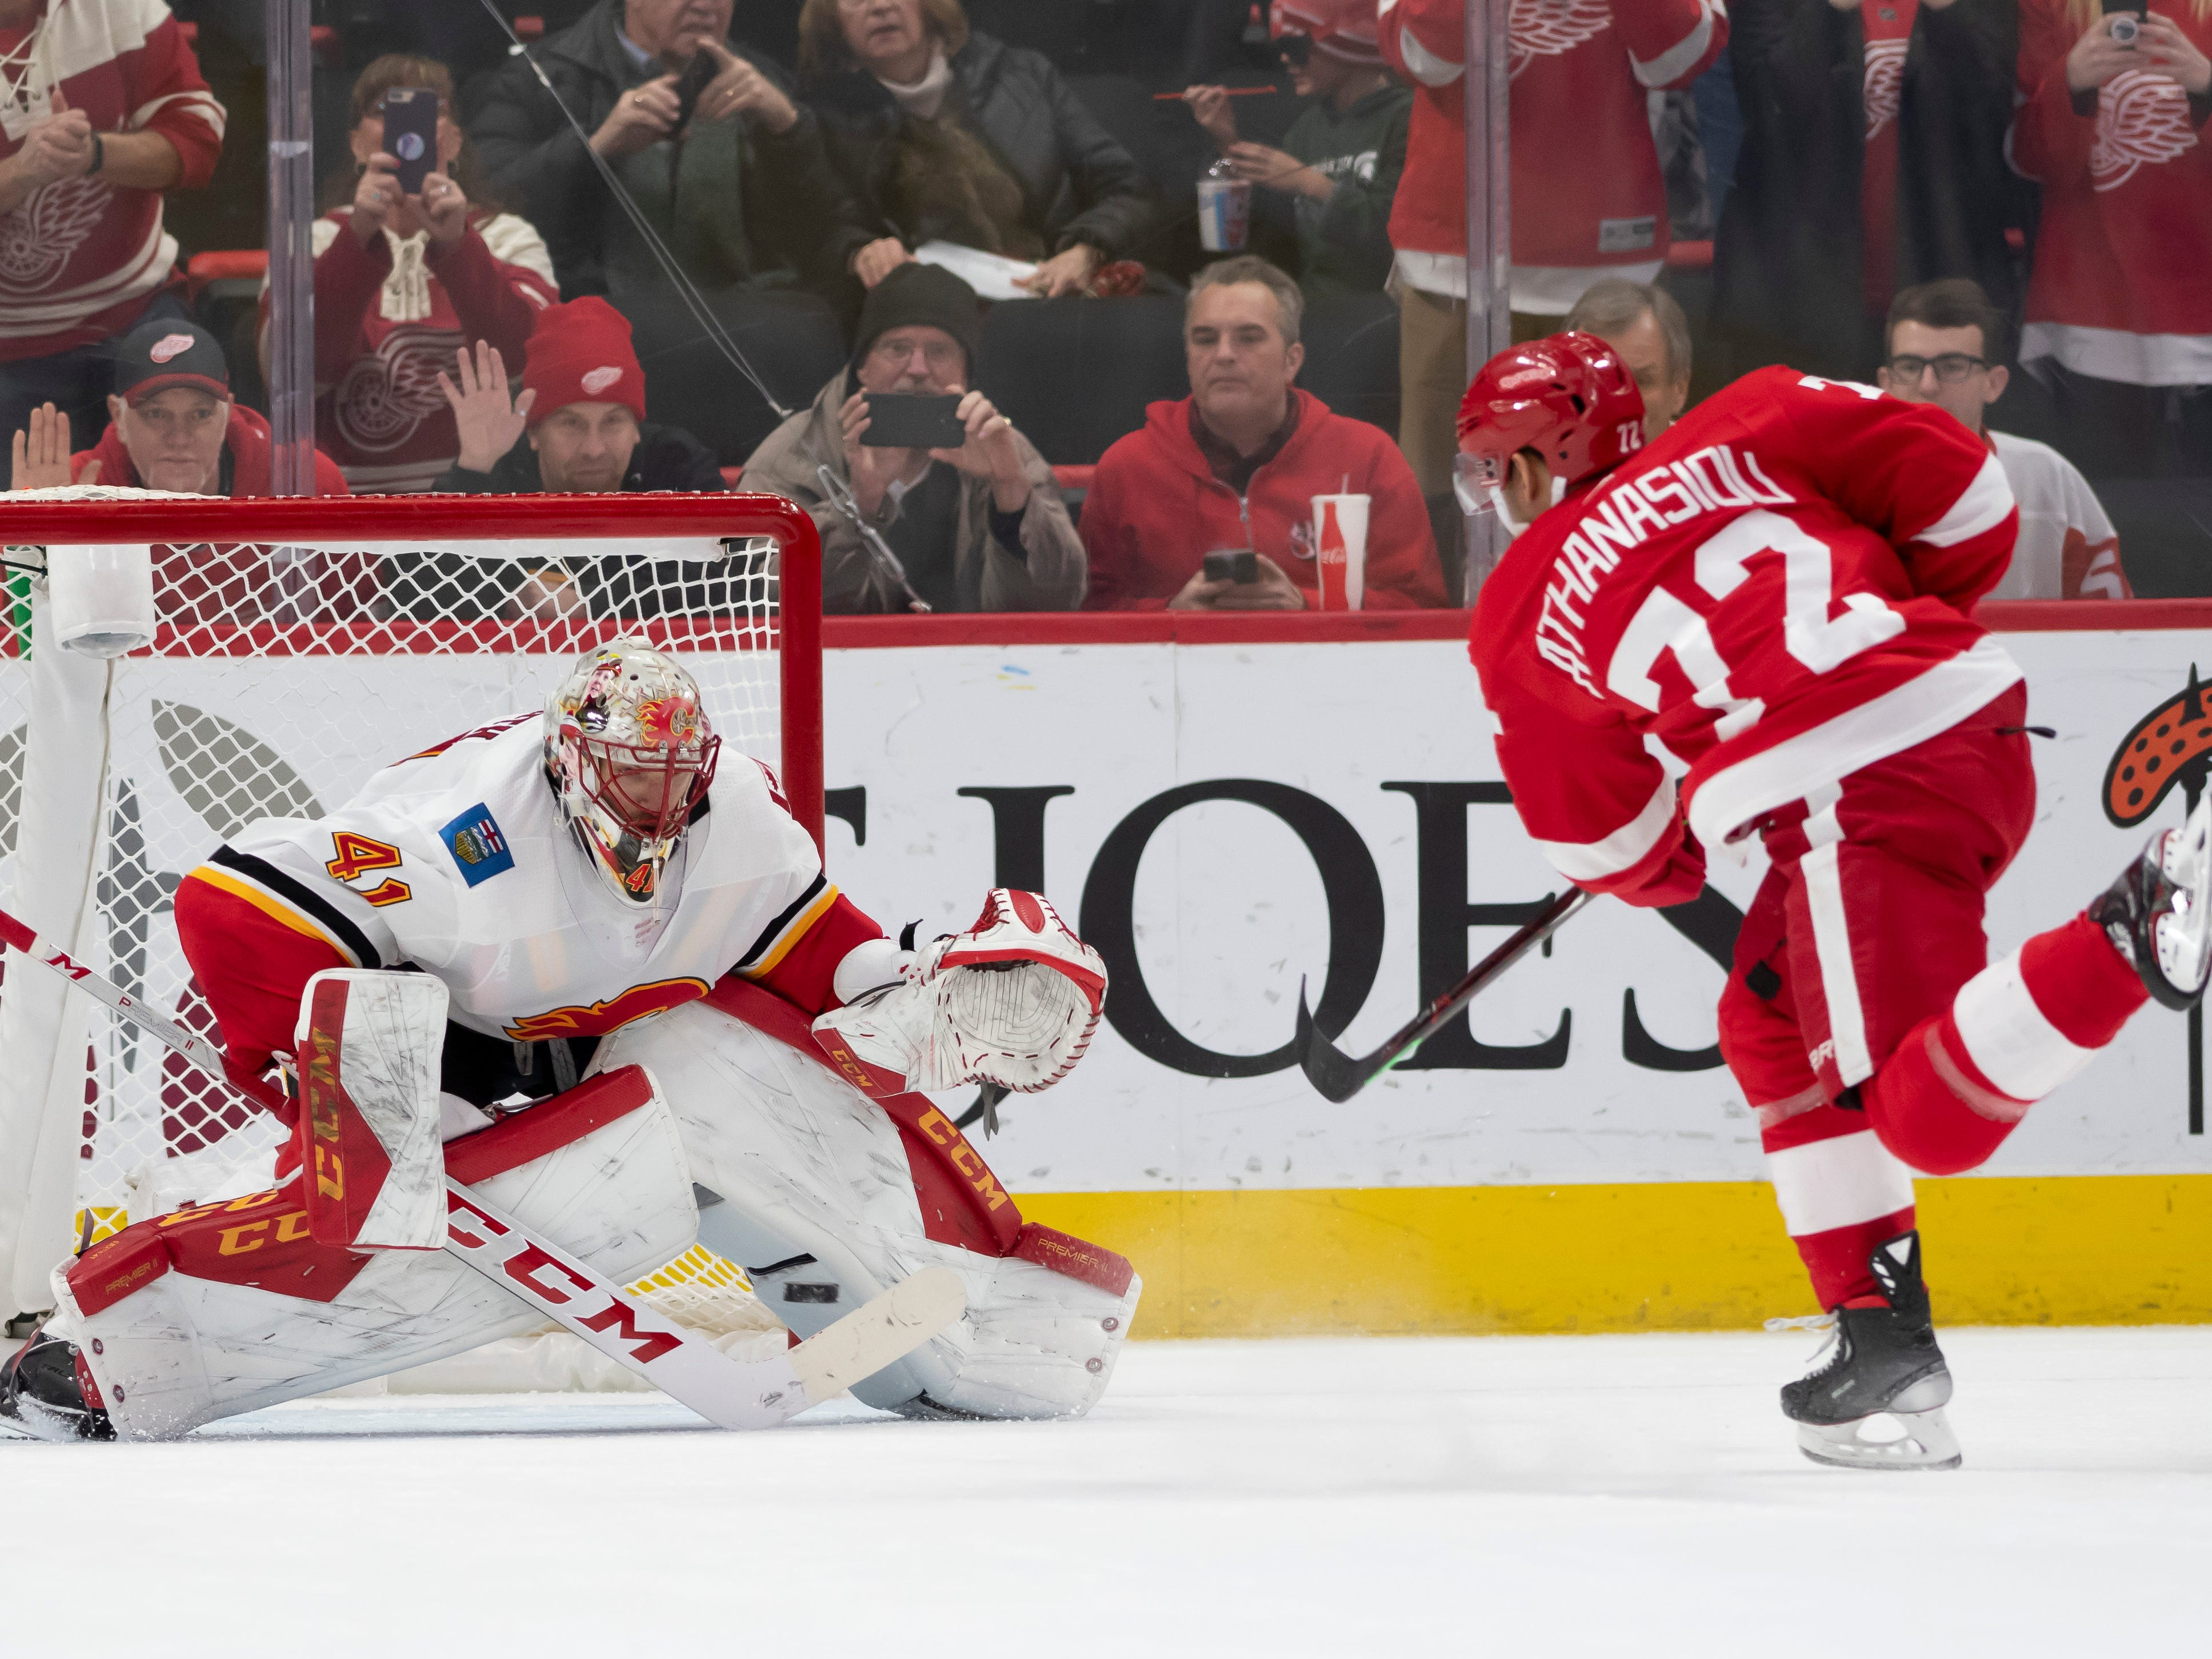 Detroit center Andreas Athanasiou sends a shot past Calgary goaltender Mike Smith for a goal during a penalty shot in the second period.